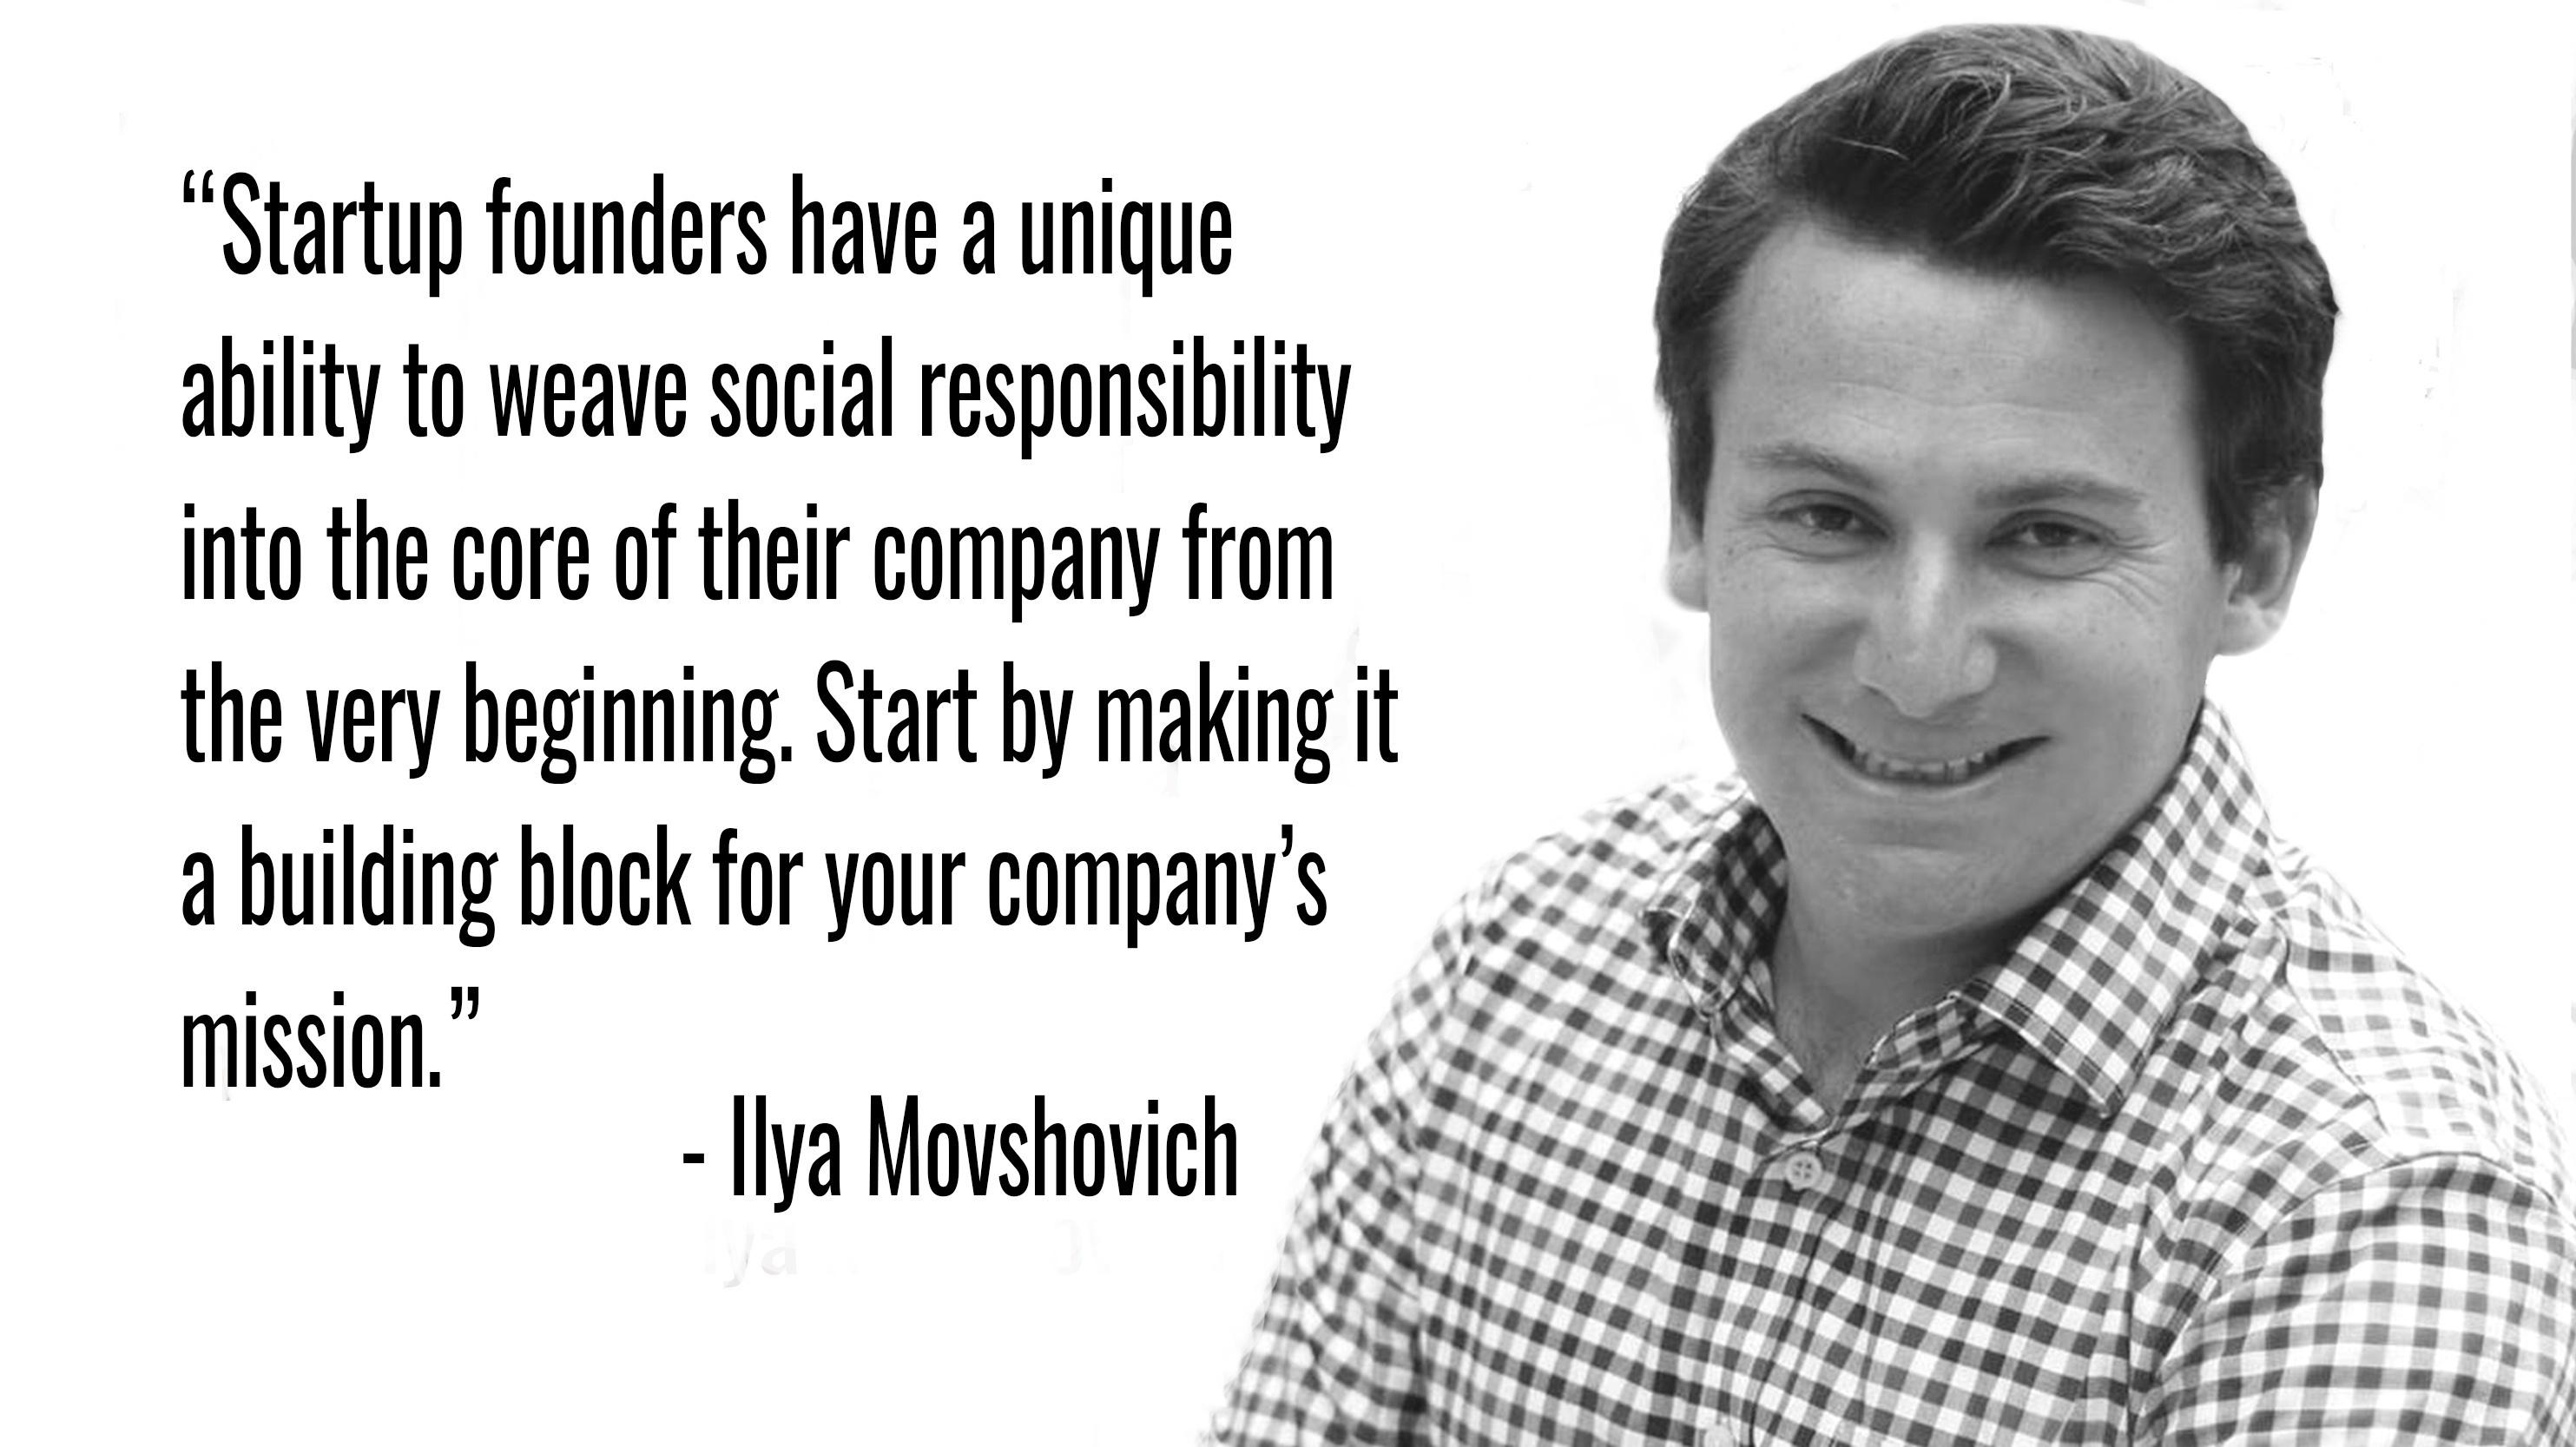 Podcast #55 - Ilya Movshovich DIscusses CARMAnation: Collaboration, Charity and the On-demand Economy